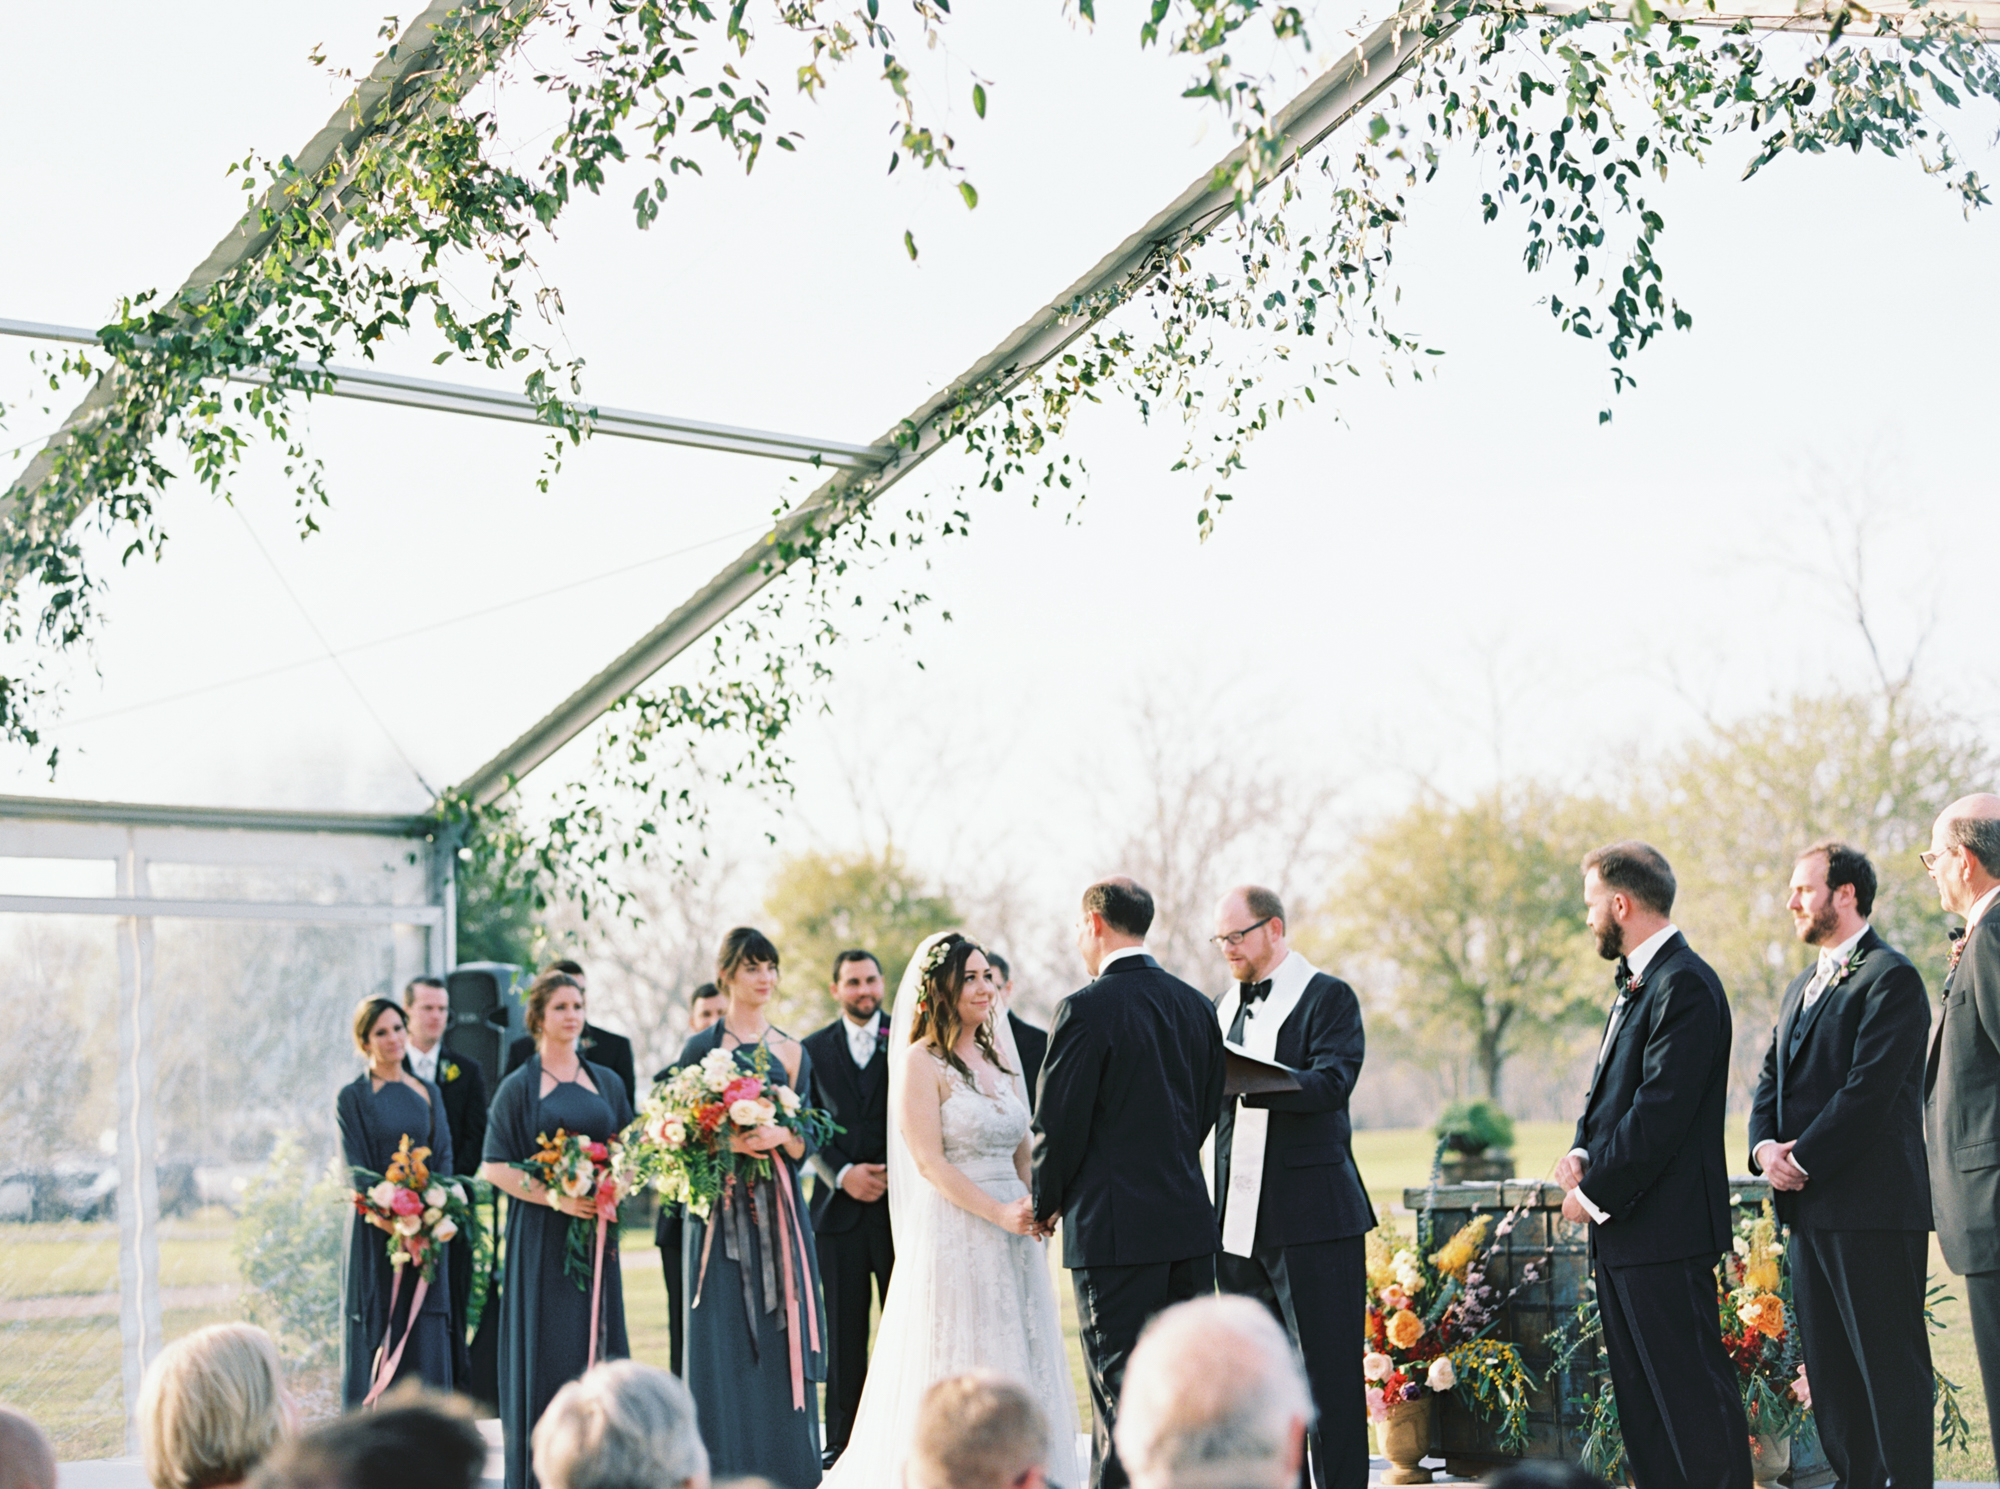 Clear tent with greenery wedding